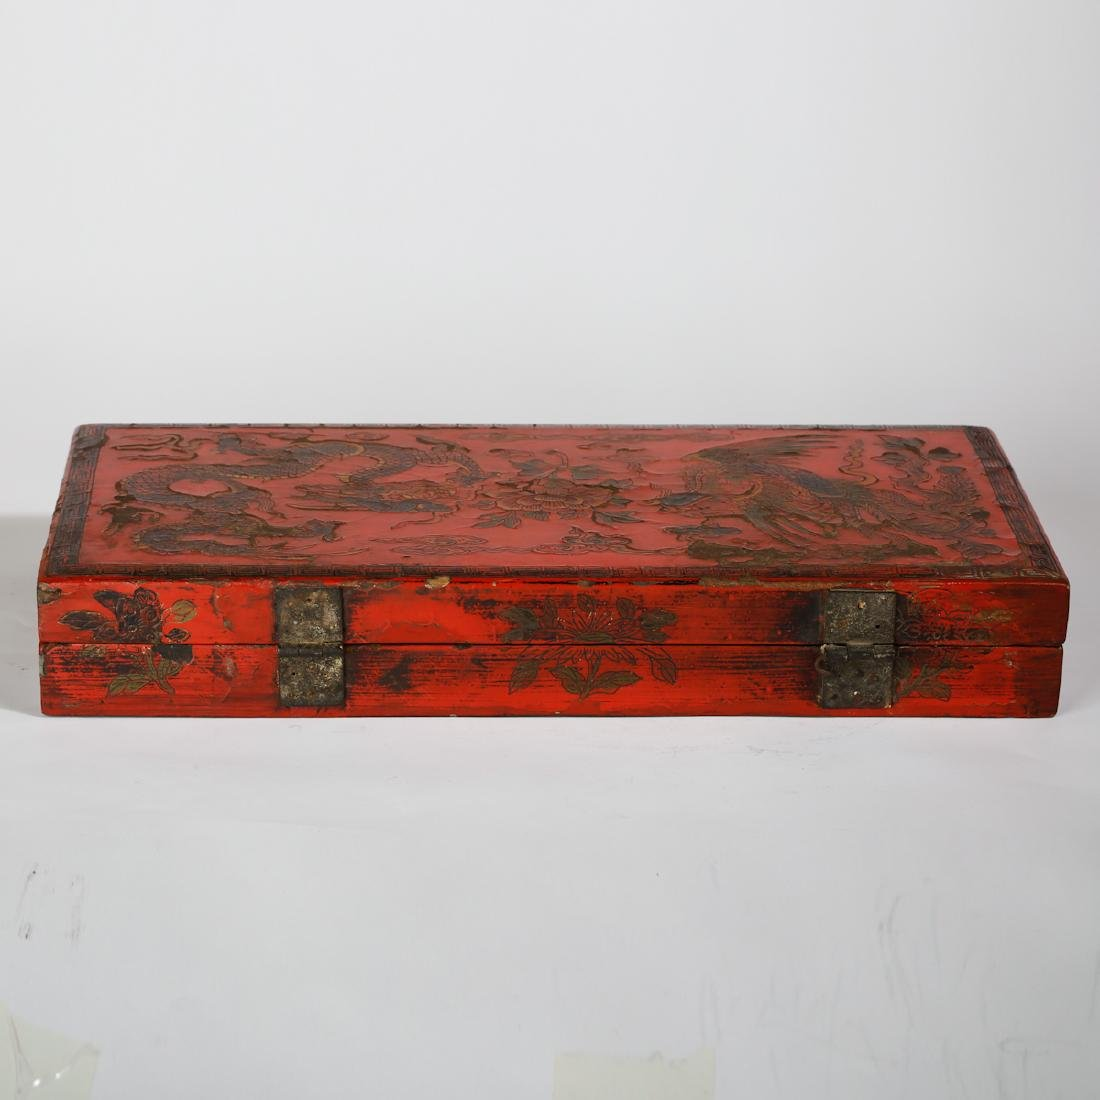 CHINESE LACQUER WOOD DRAGON AND PHOENIX BOX - 6